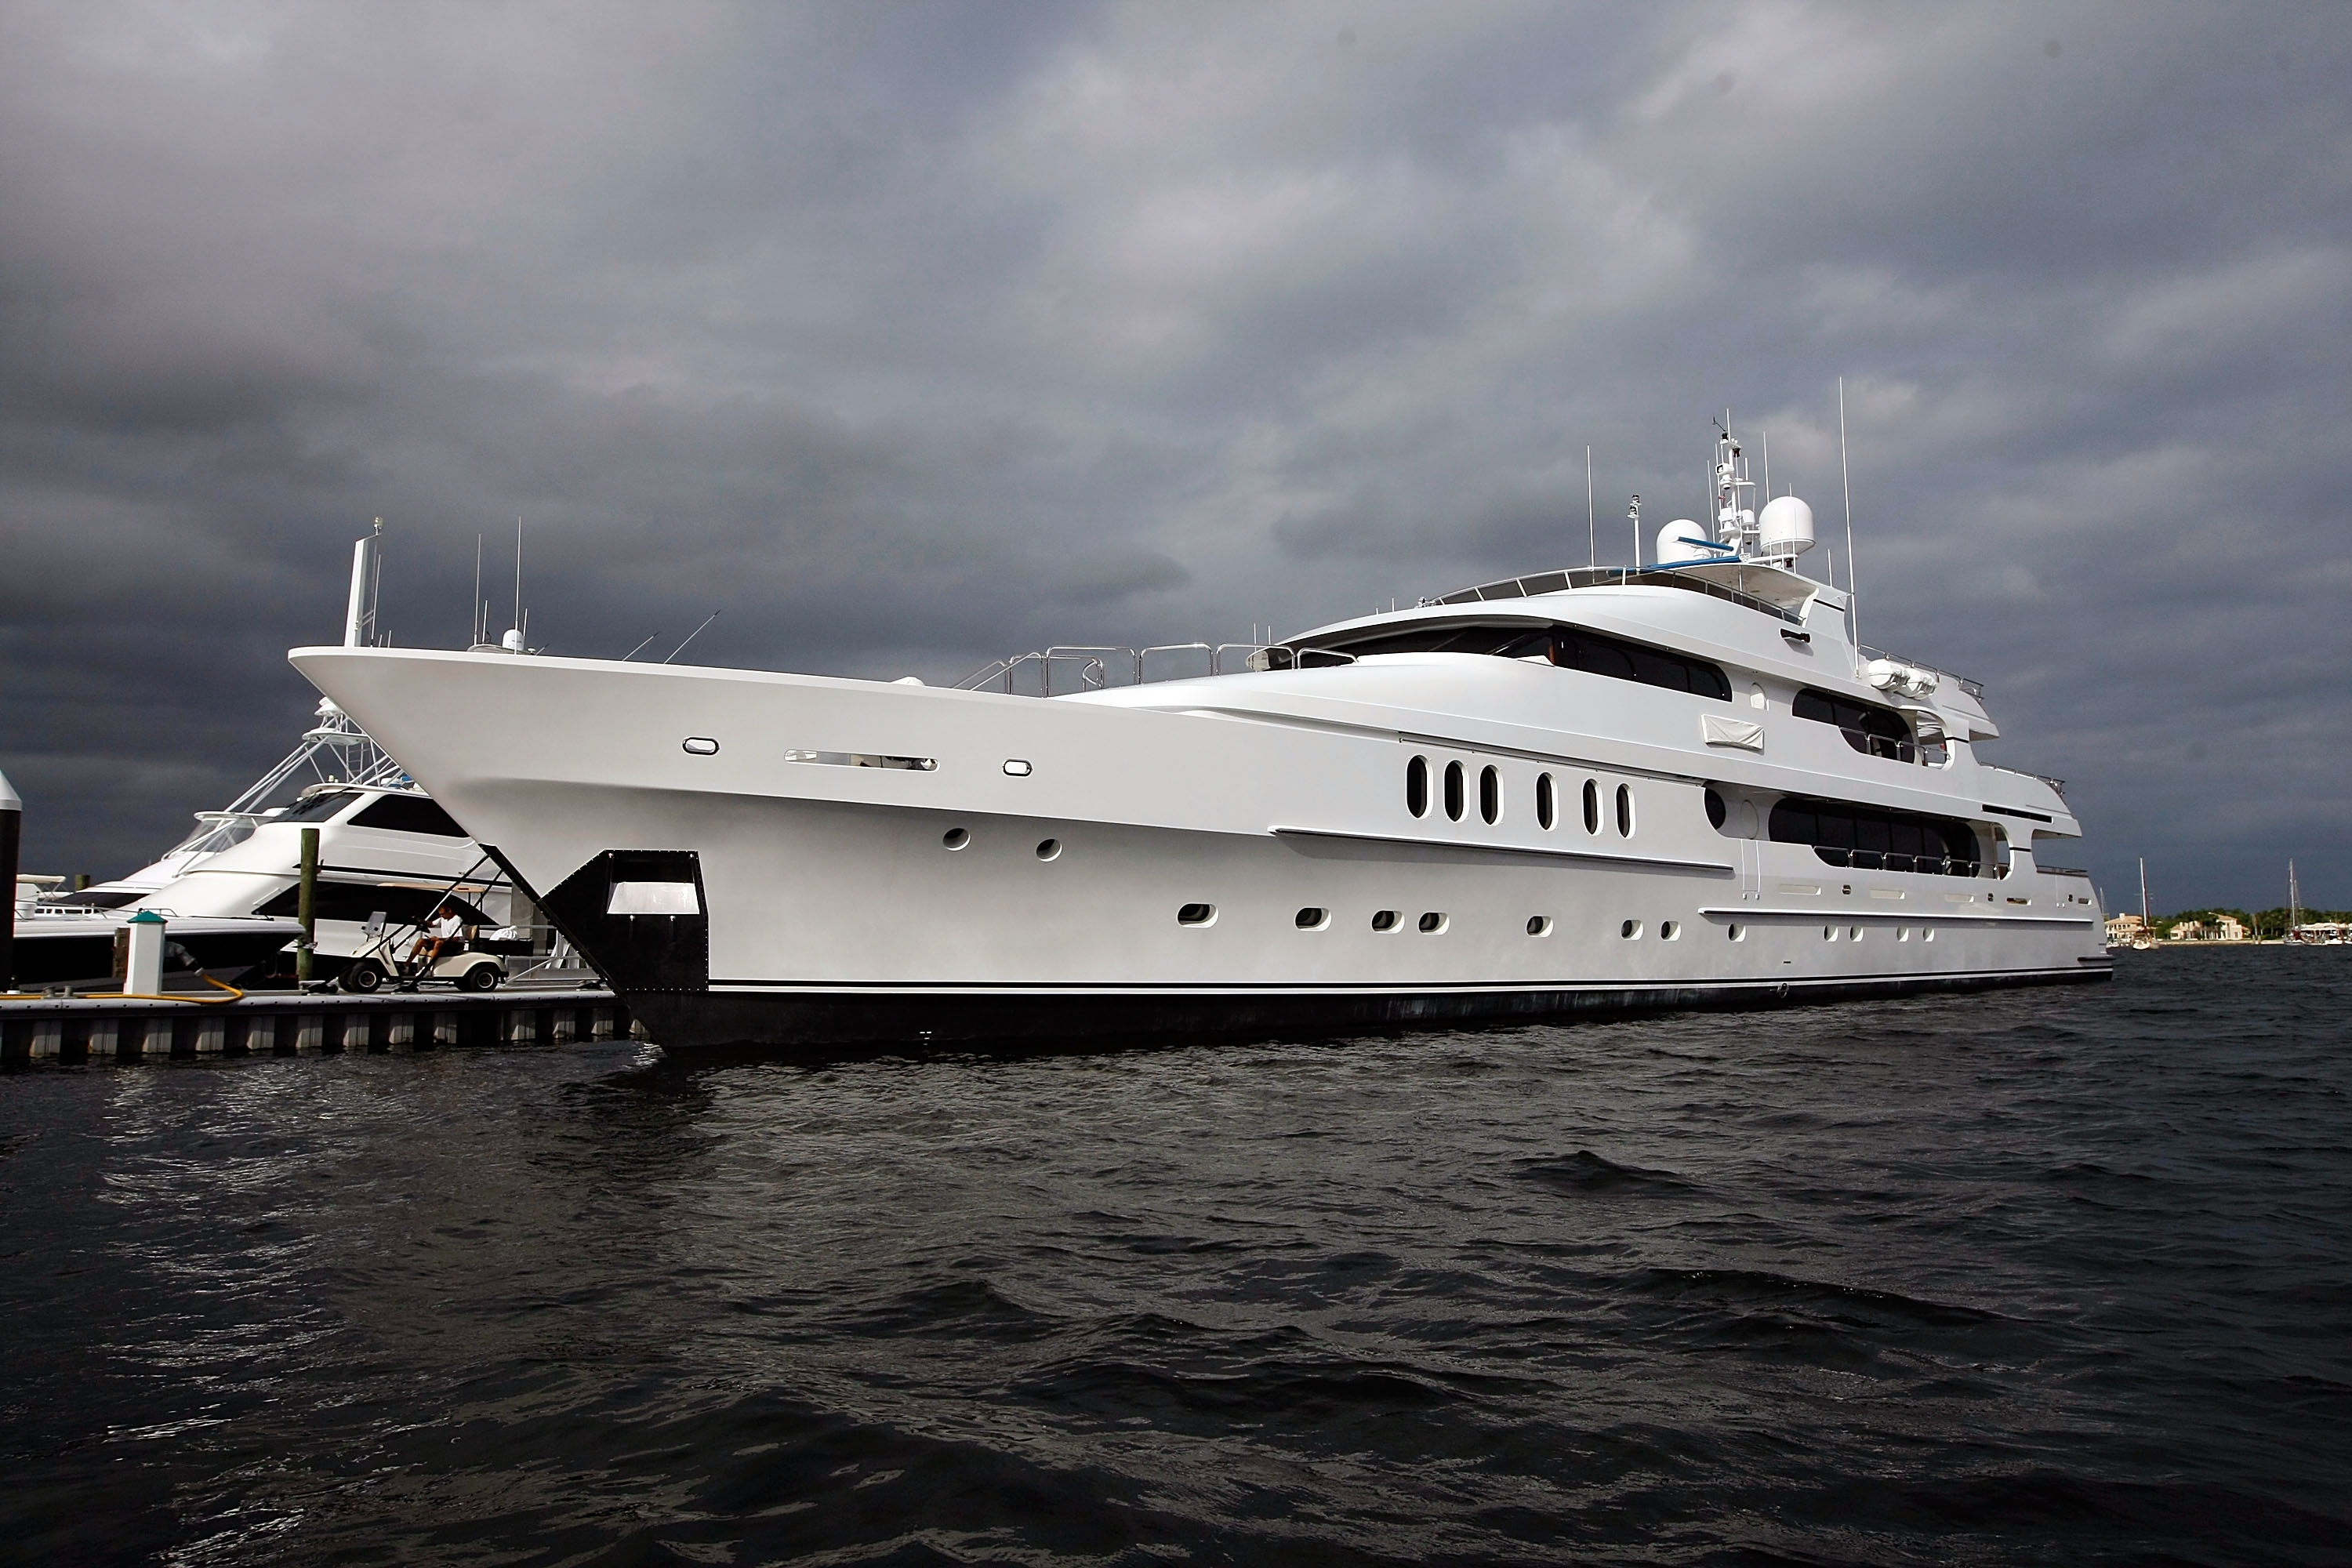 Tiger Woods yacht 'Privacy'